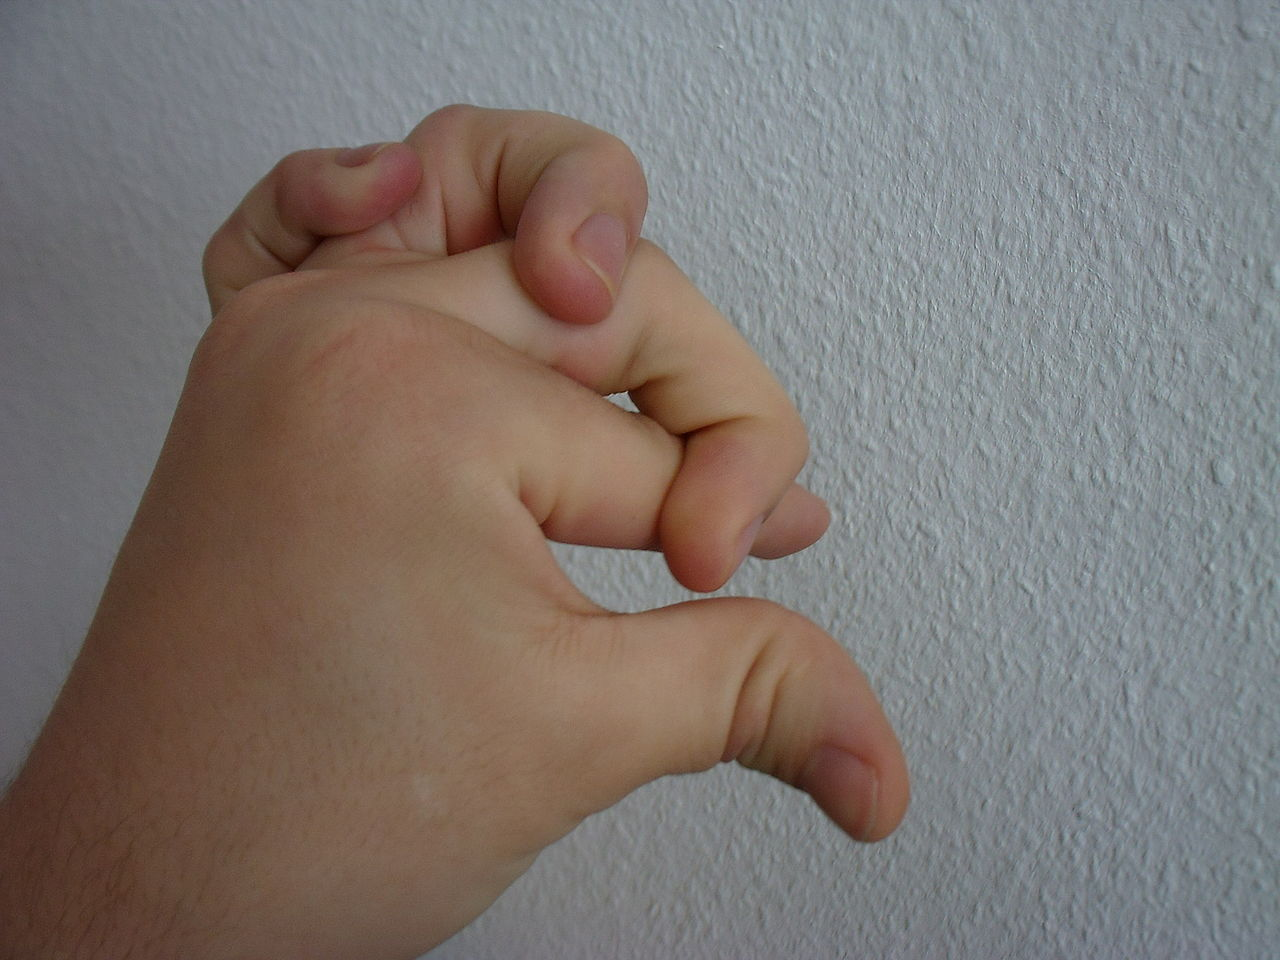 File:Finger pile Ehlers Danlos syndrome.JPG - Wikimedia Commons